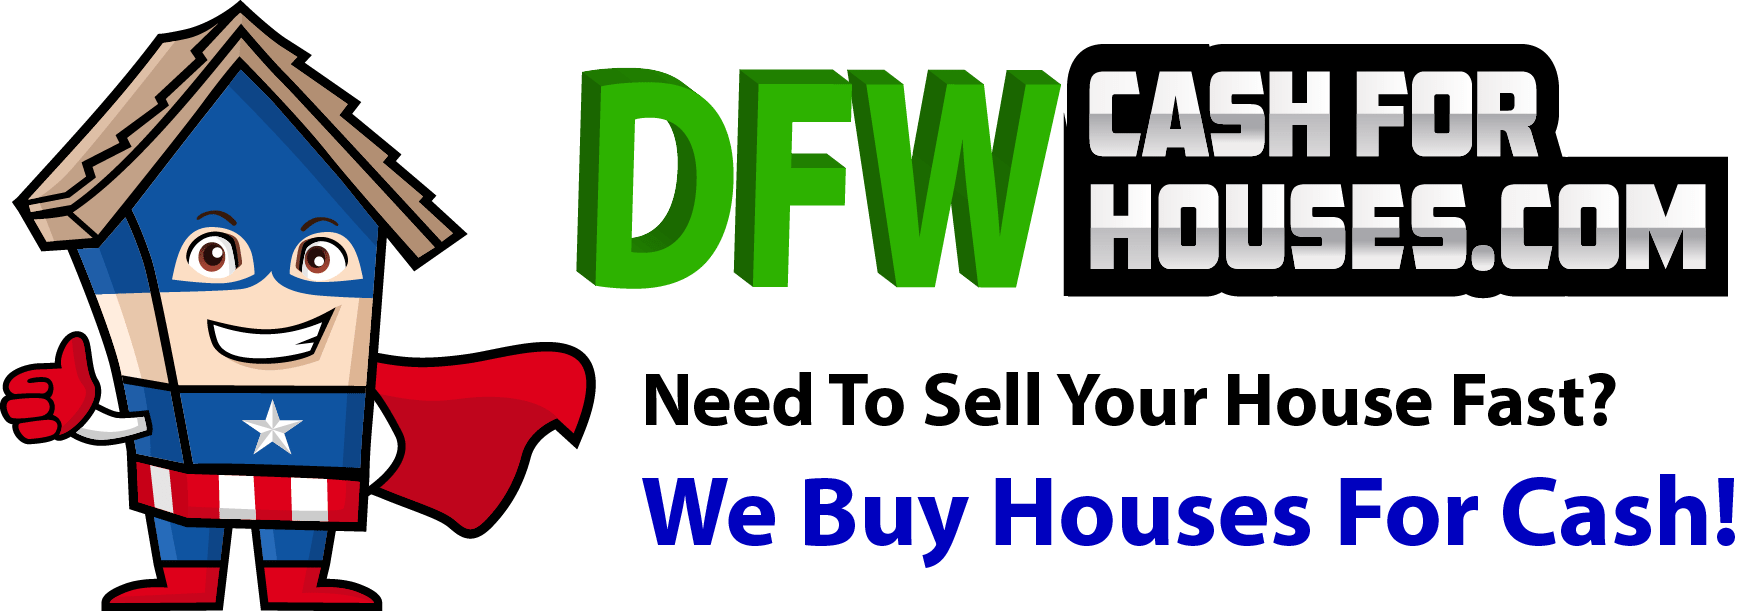 DFW Cash For Houses logo